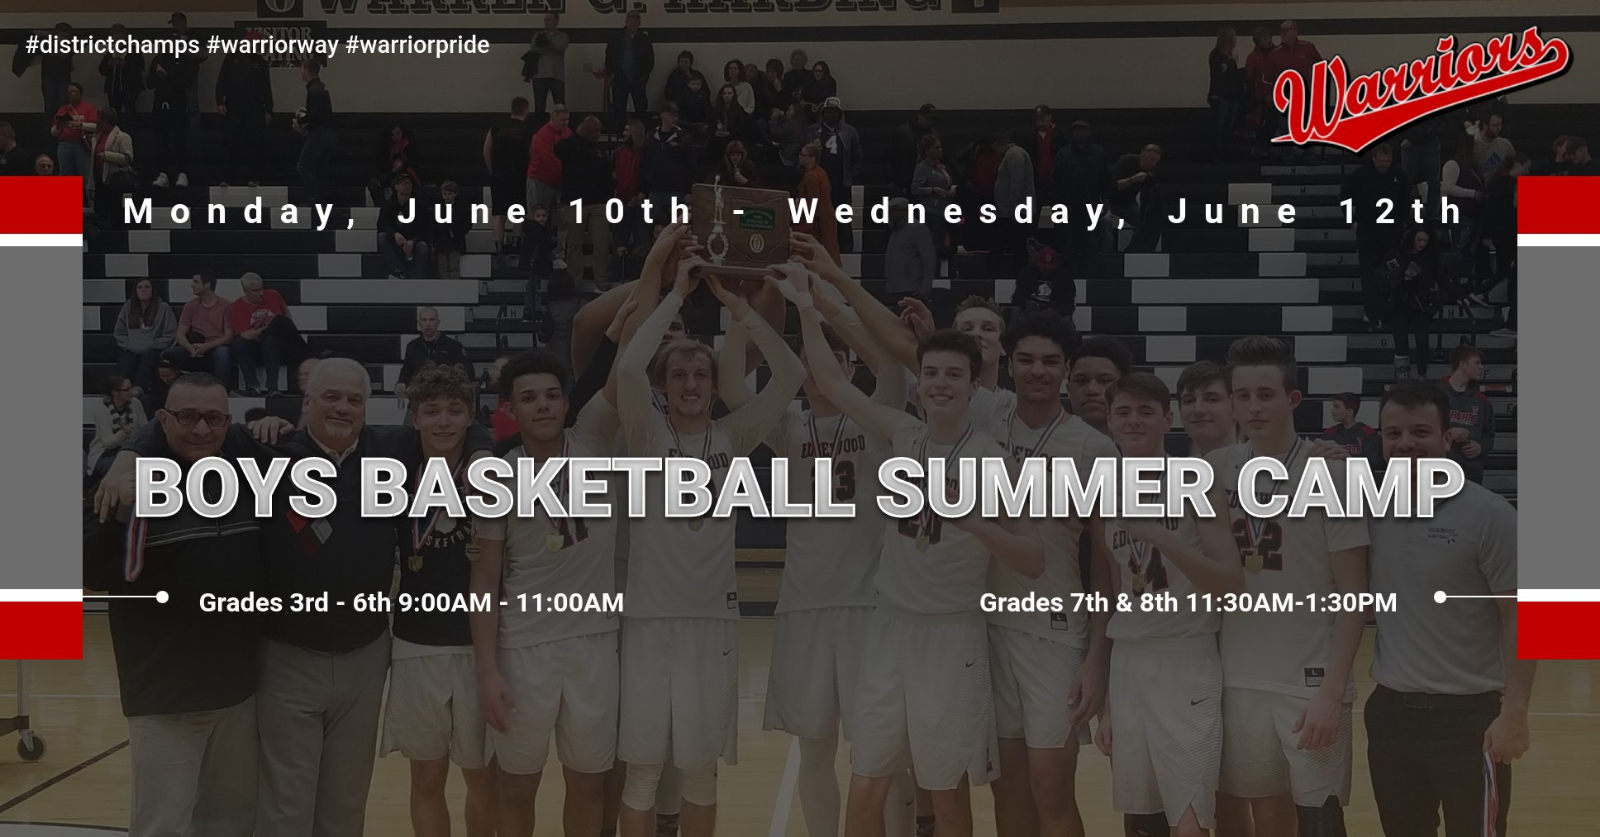 2019 Warrior Boys Basketball Camp Incoming Grades 3rd-8th